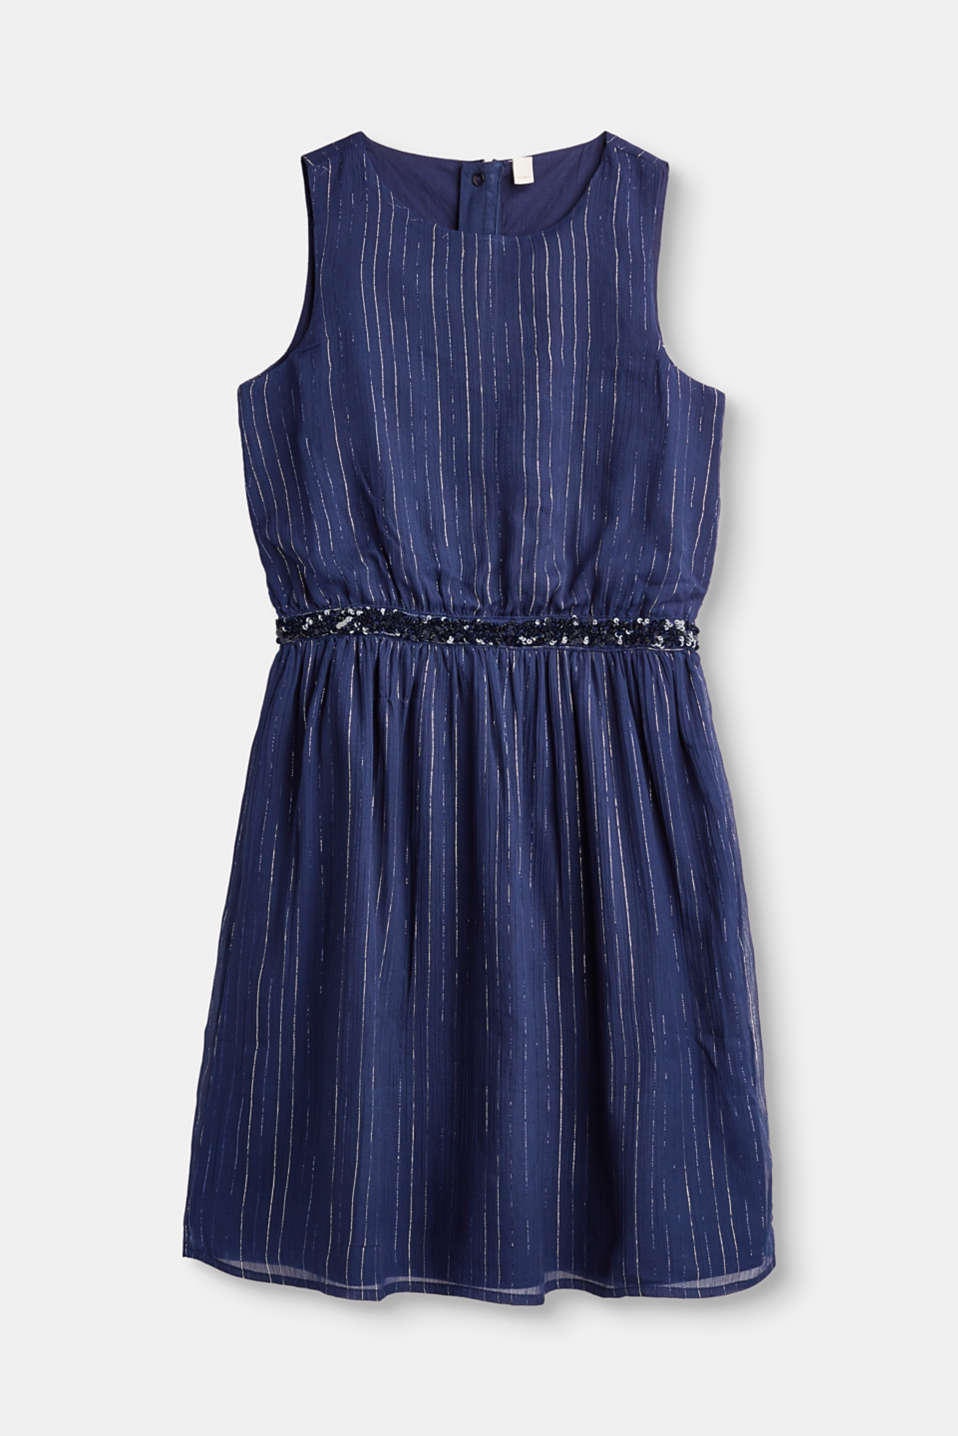 Esprit - Formal chiffon dress with lurex stripes